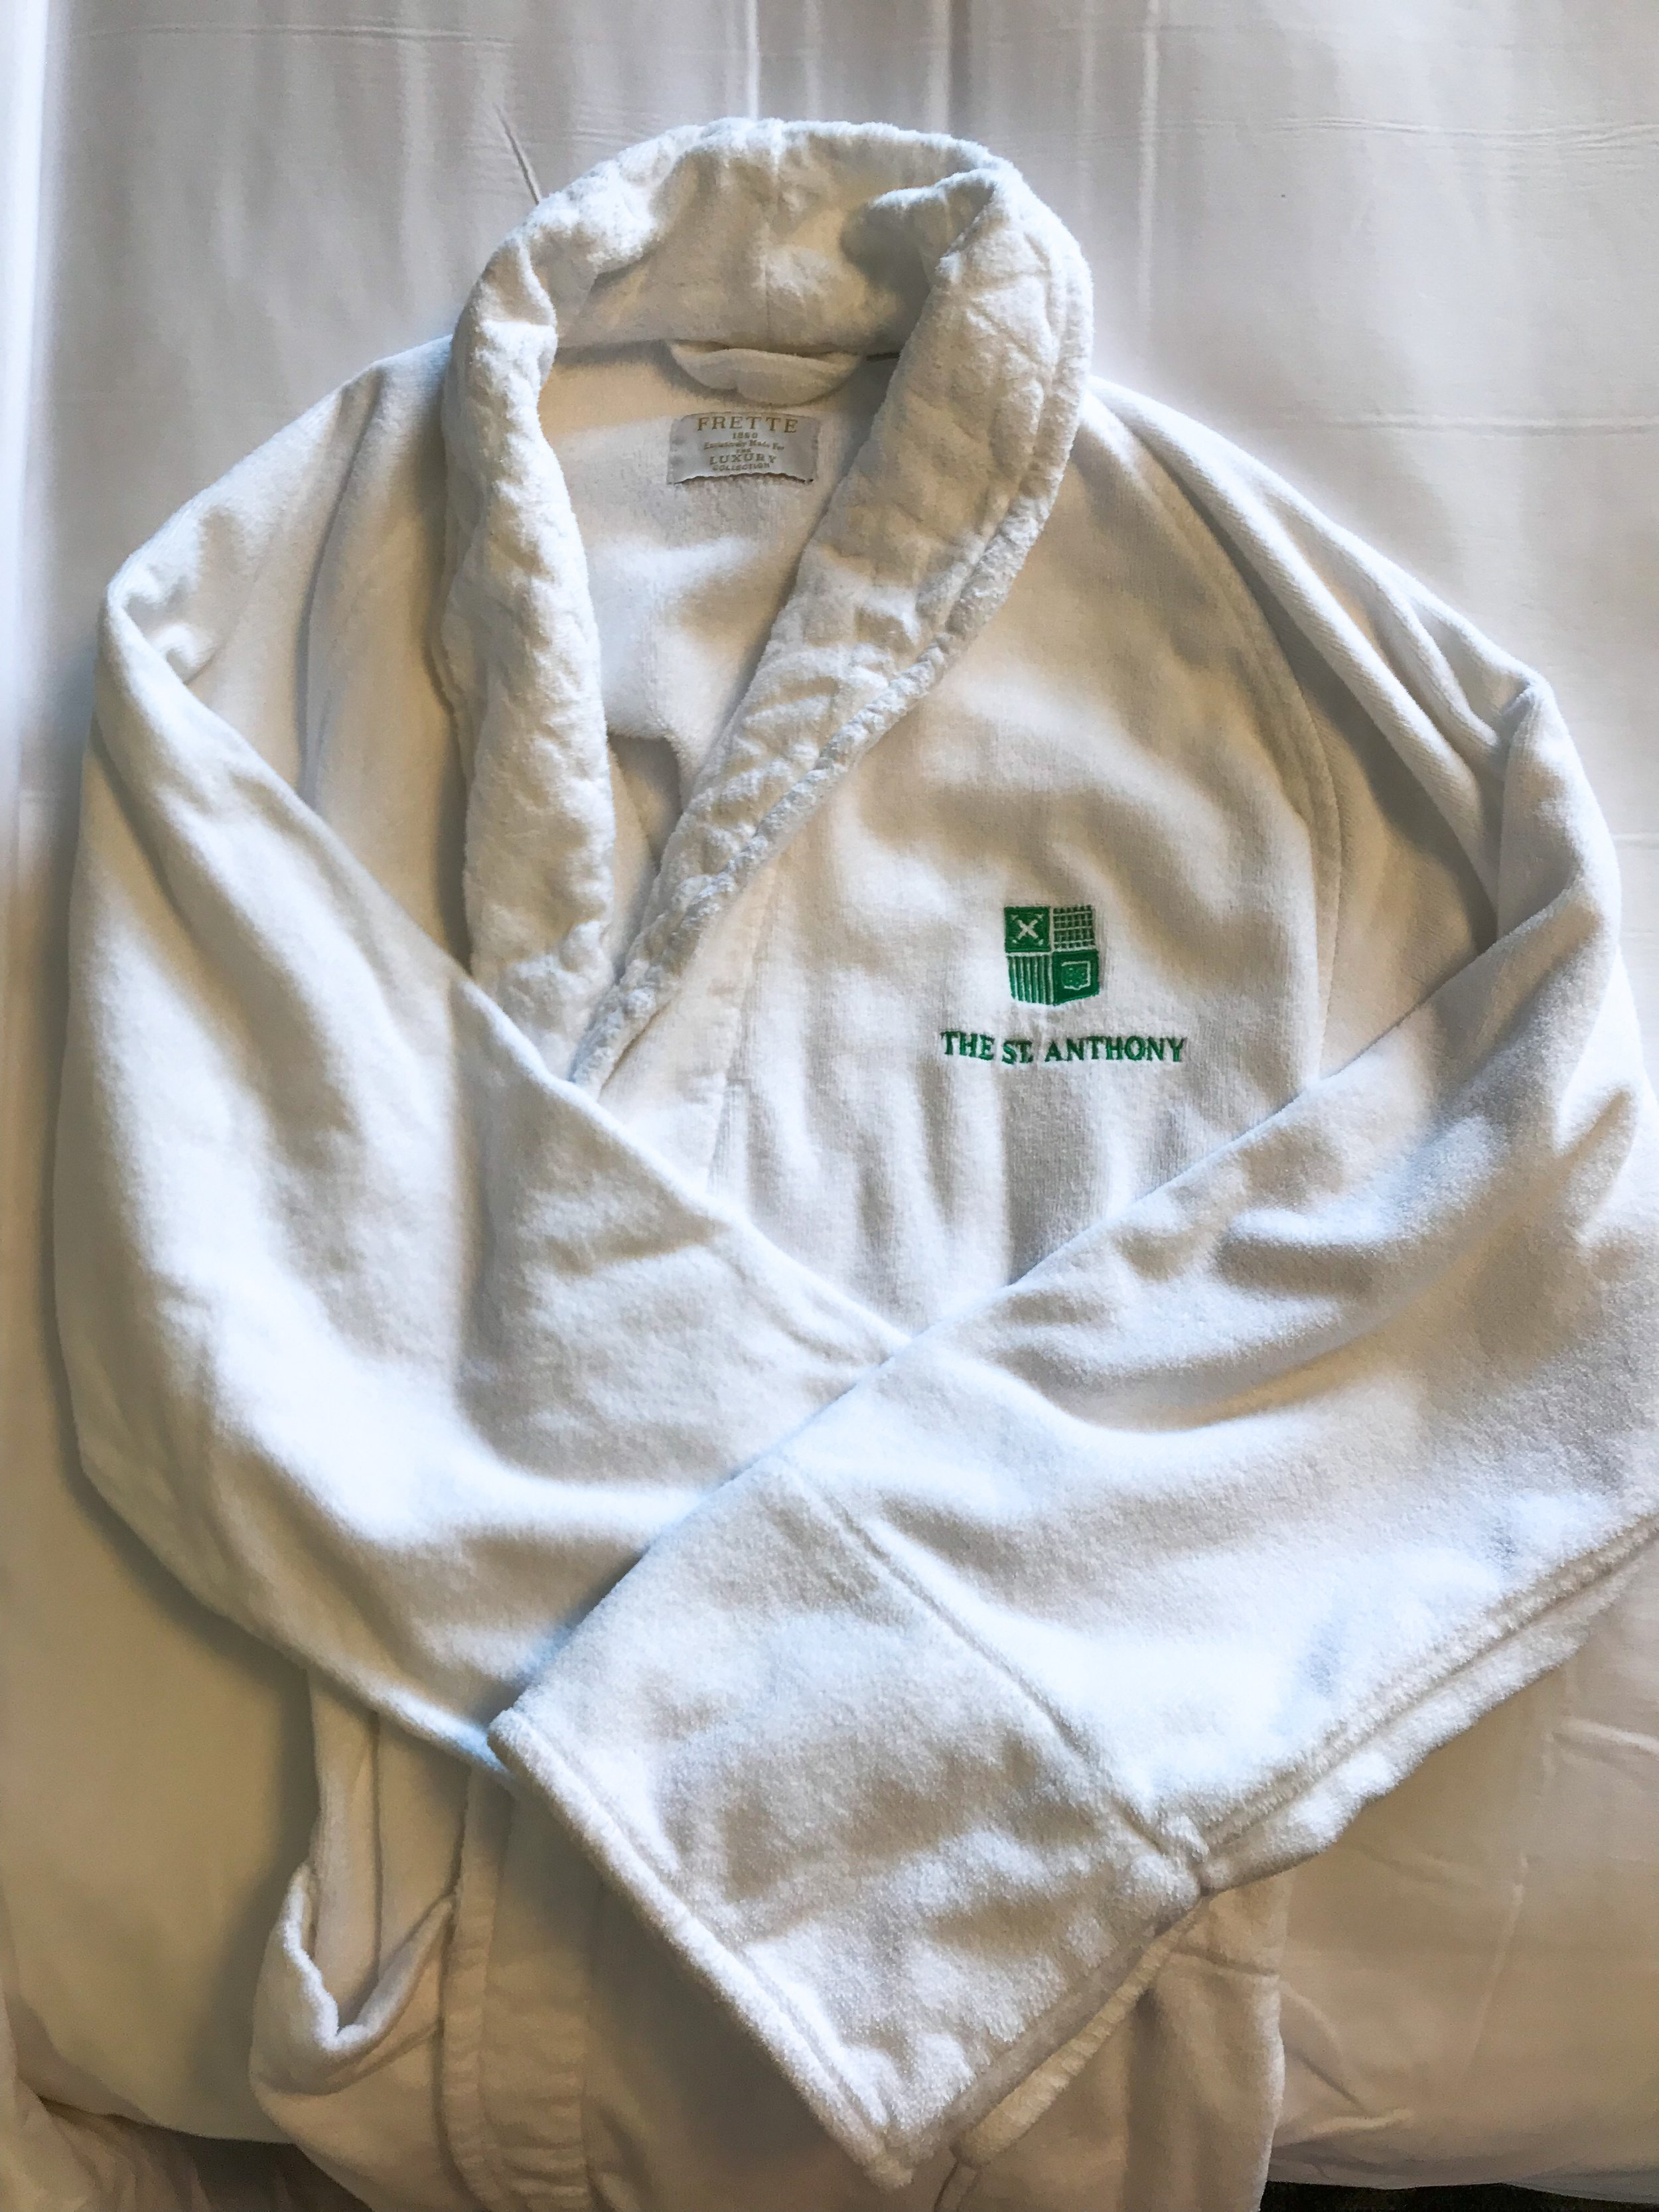 Guests are provided plush bathrobes during their stay.